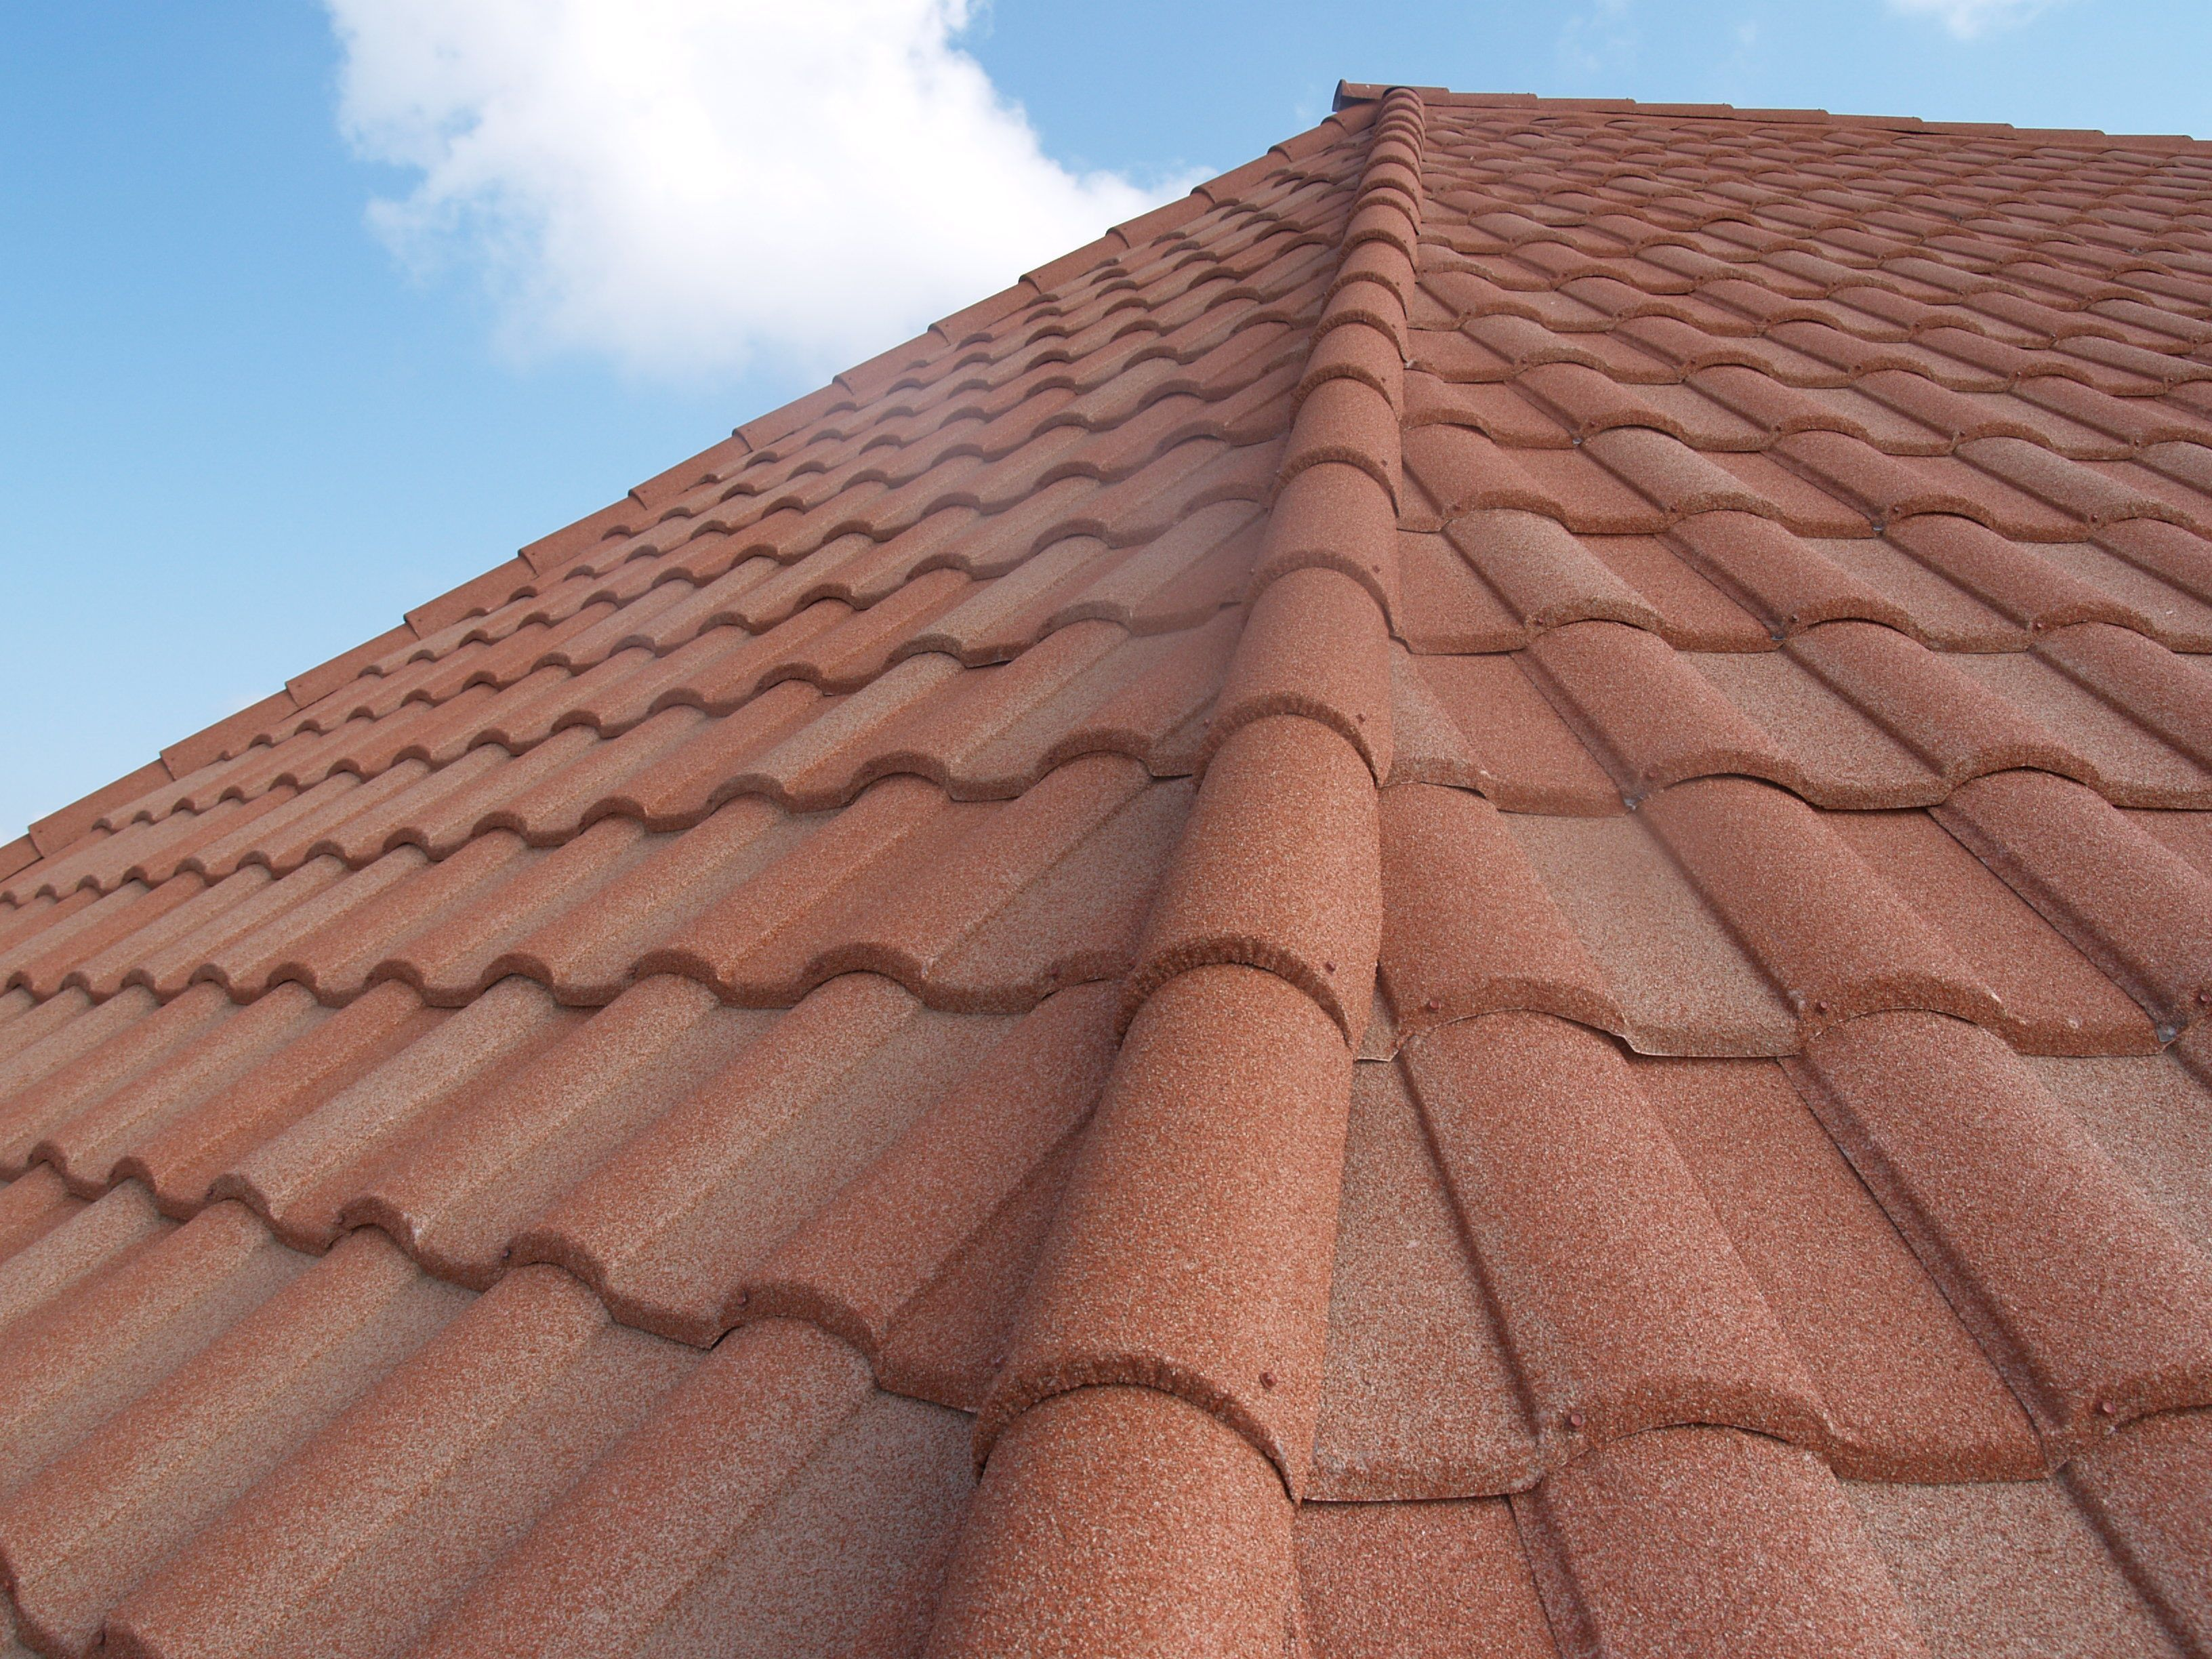 Invest In Green Roofing To Fight Climate Change In 2020 Clay Roof Tiles Roof Tiles Clay Roofs